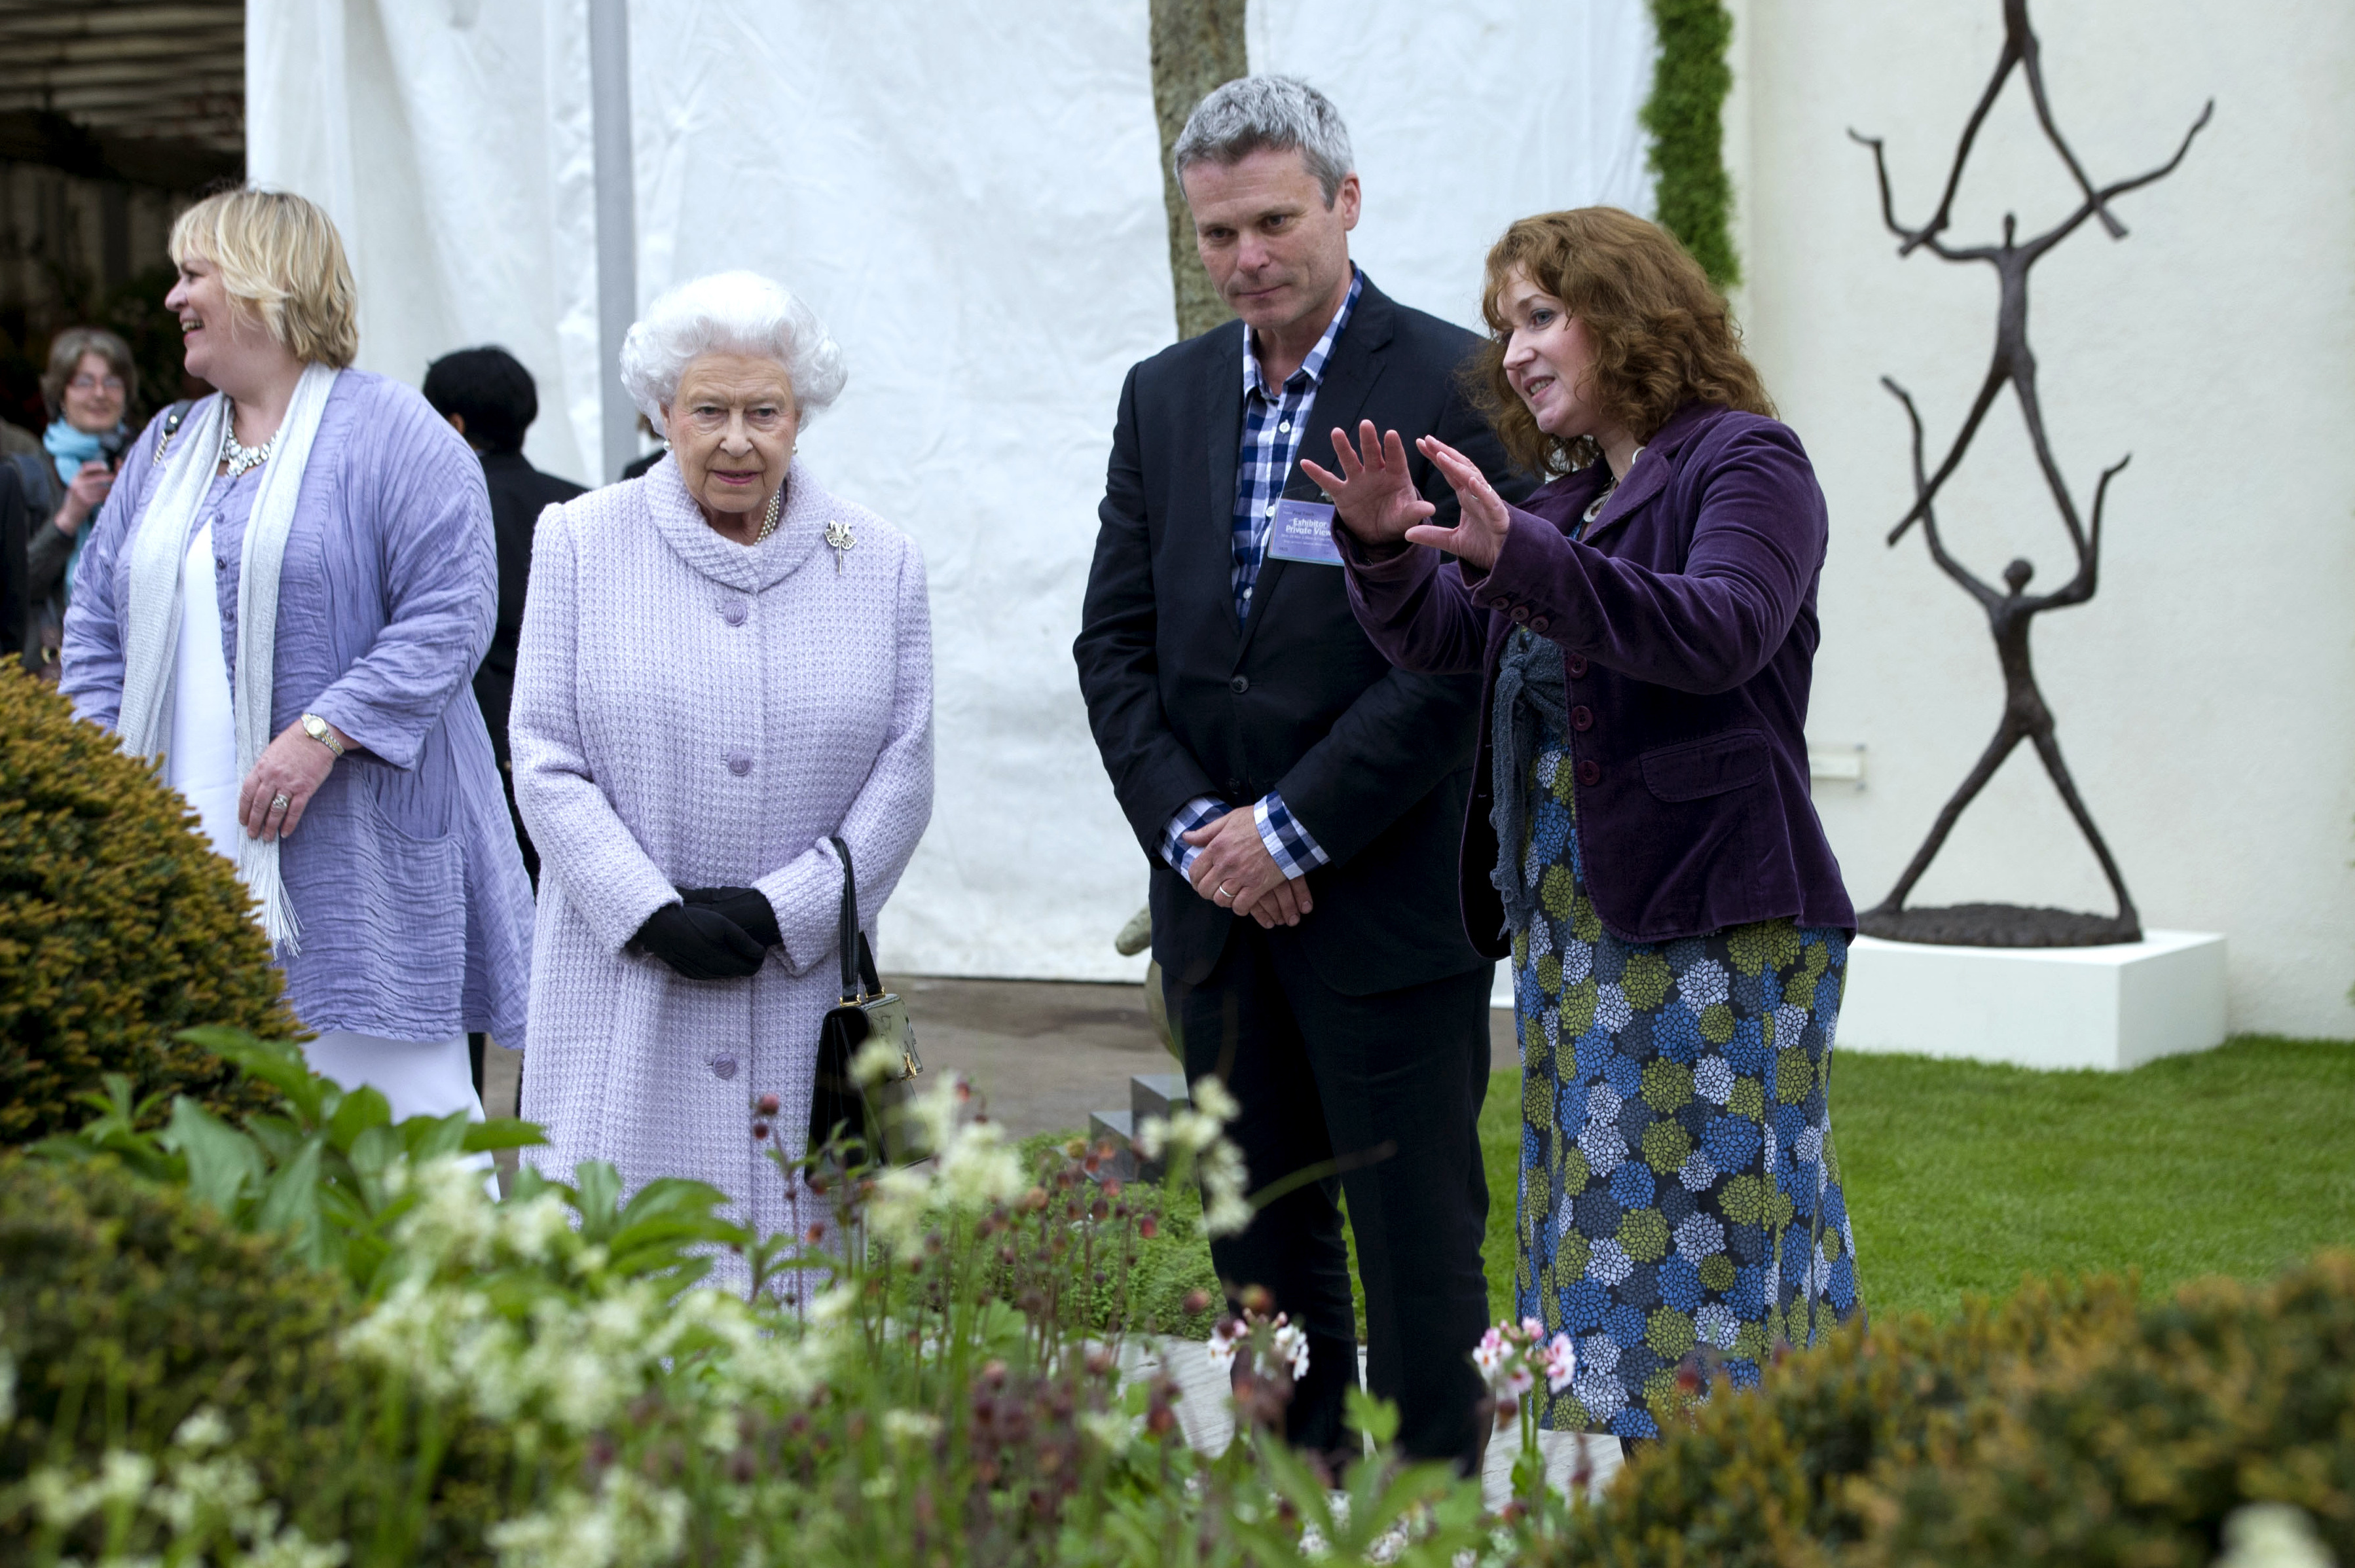 Queen Elizabeth II meets award-winning garden designers Patrick and Sarah Collins at their First Touch Garden.